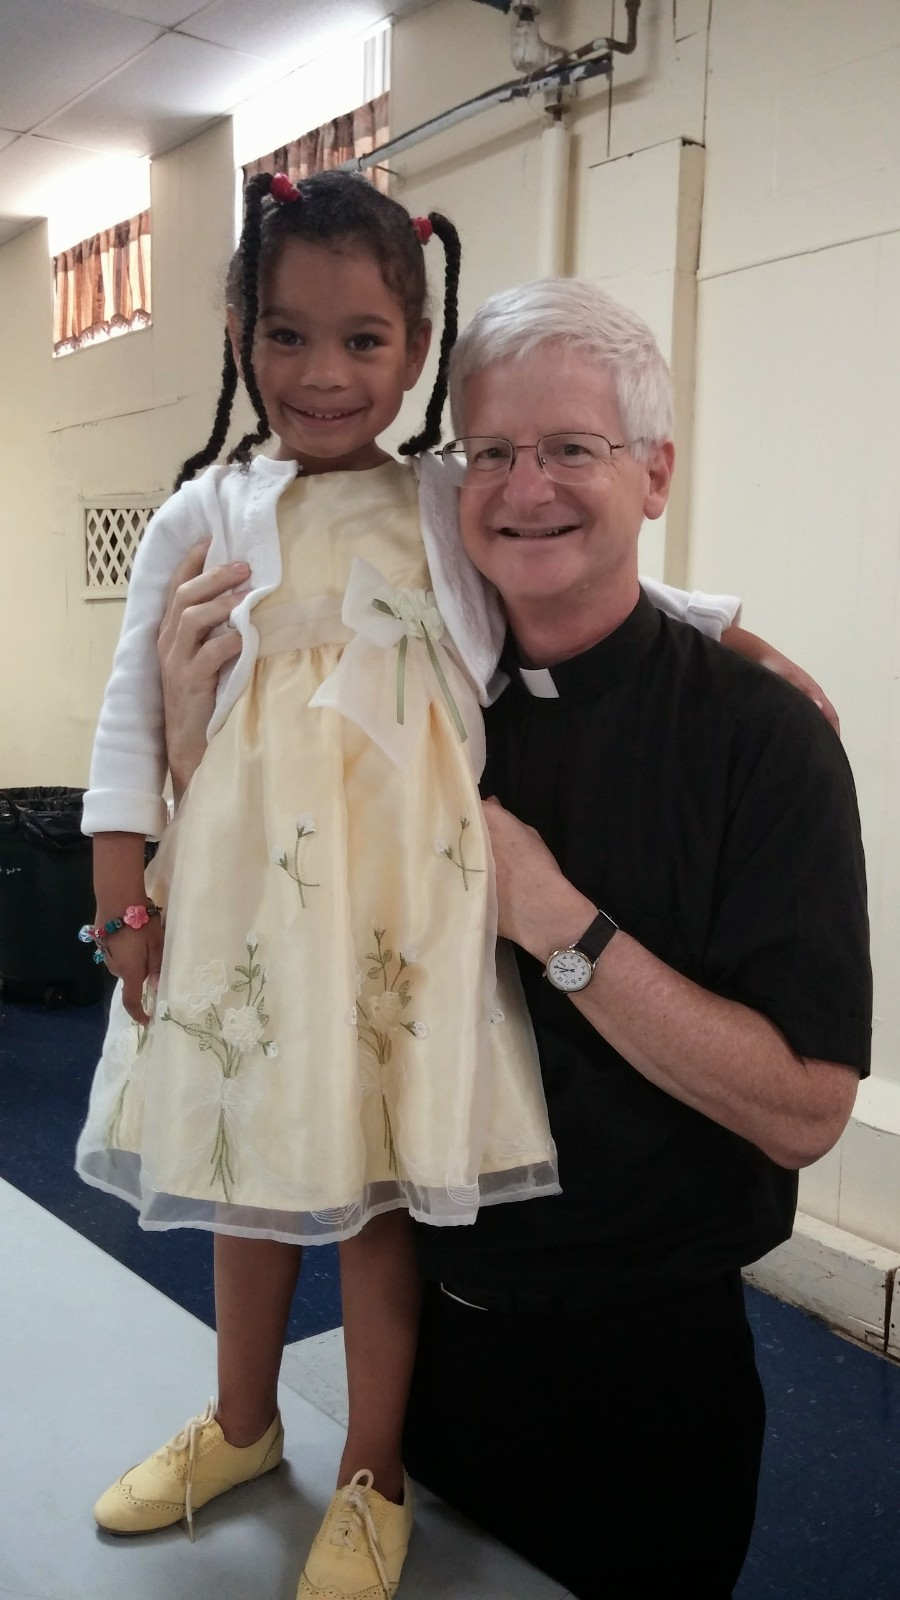 Fr. Rich and Amaya Allison